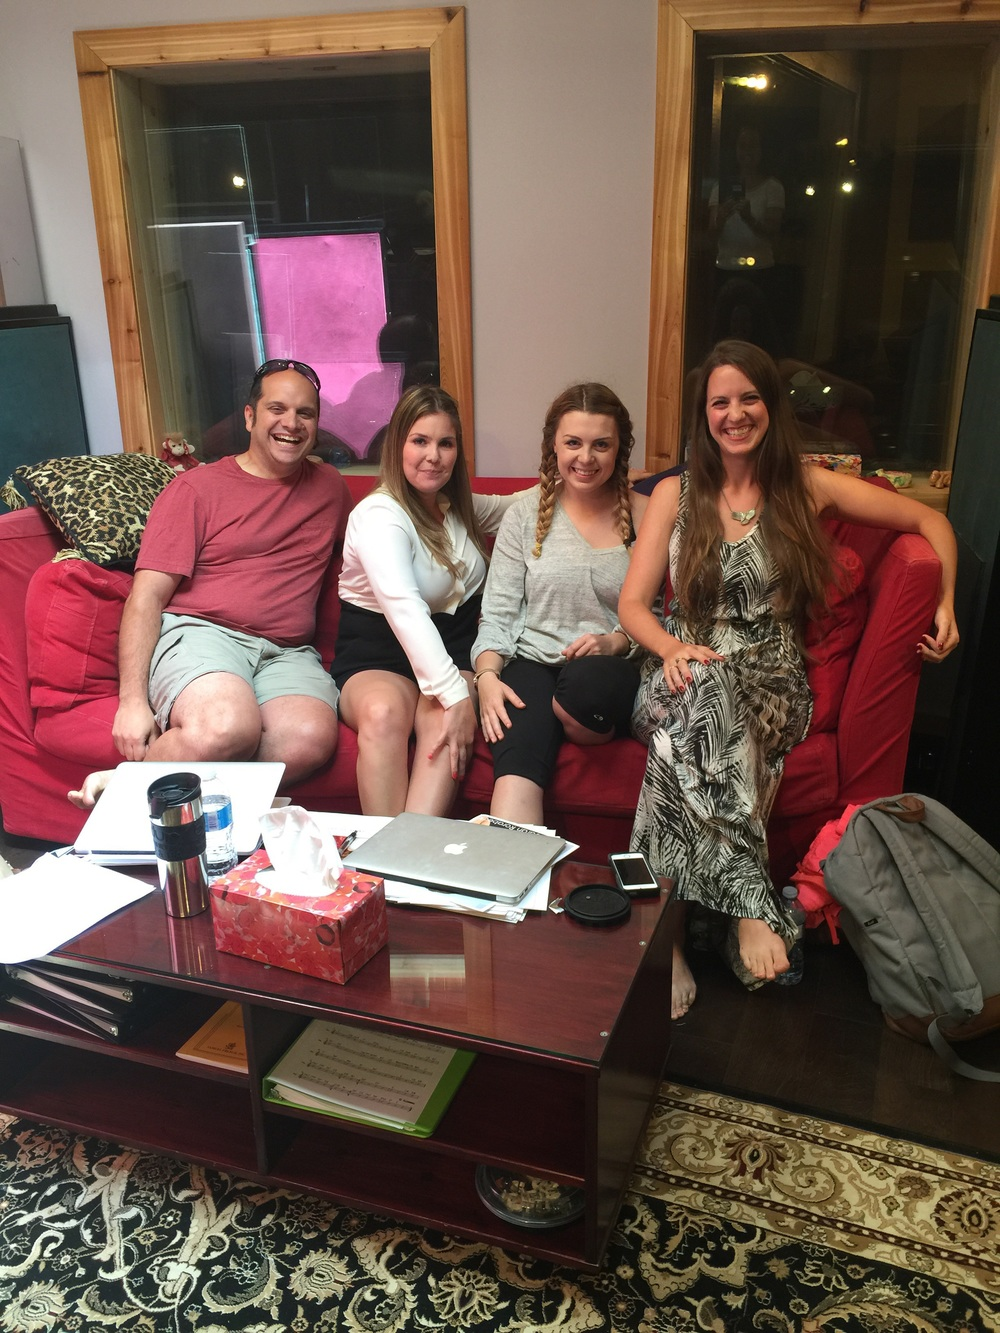 Hanging with the casting crew (Jen Smardenkas, Rebecca Moran and Sheena Clowater)